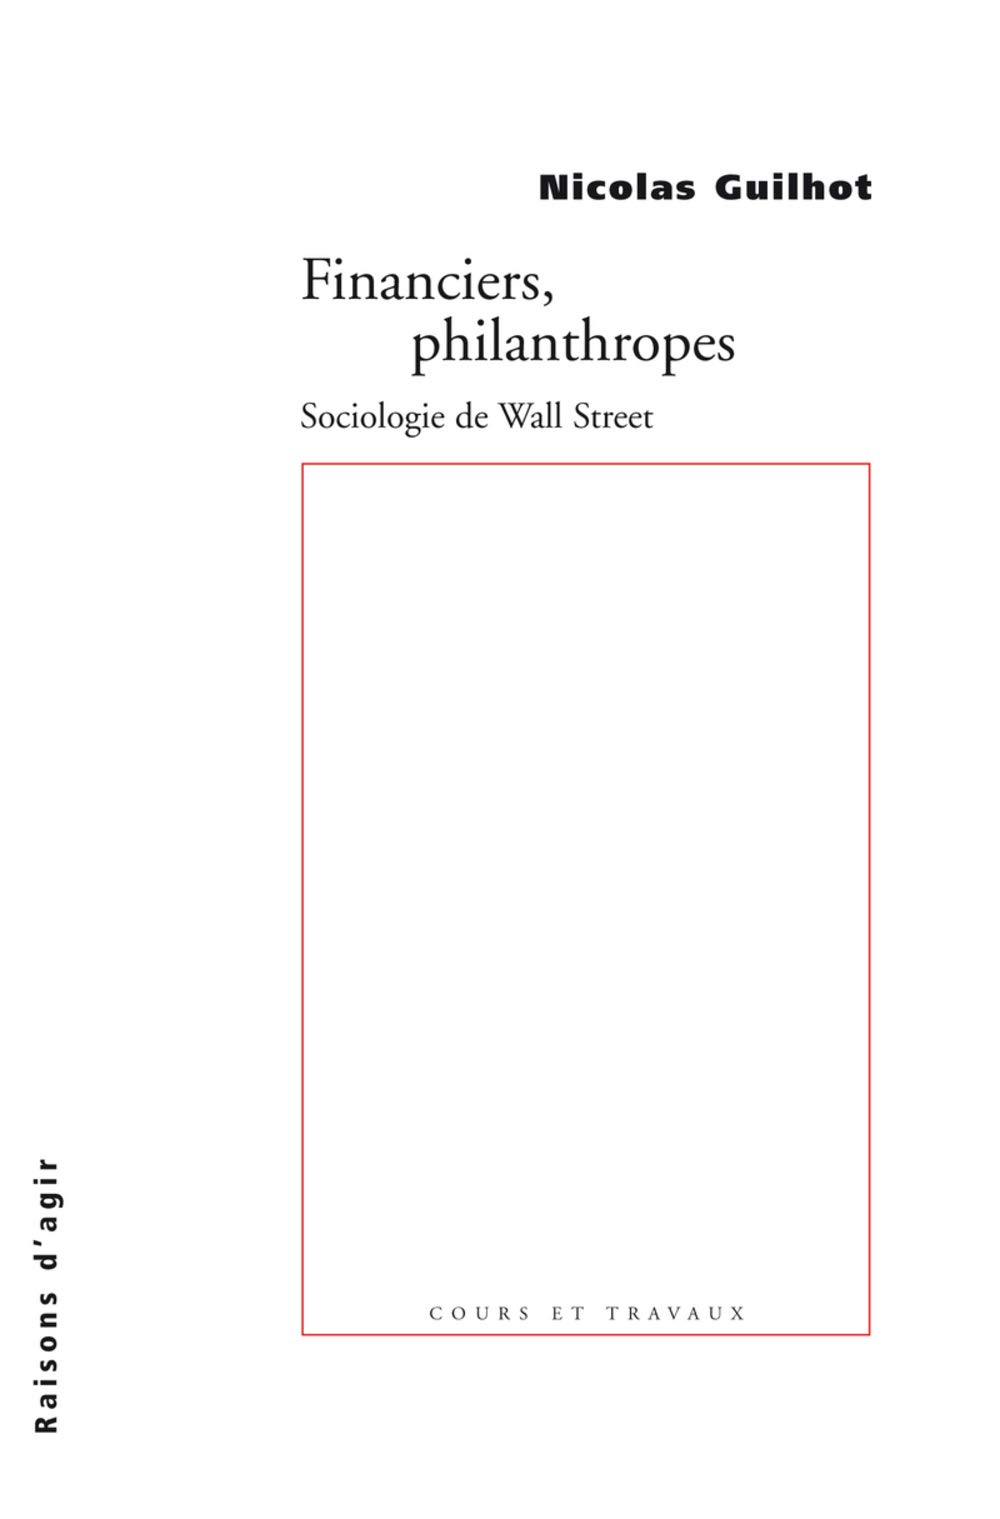 Financiers, philanthropes. Sociologie de Wall Street Broché – 19 janvier 2006 Nicolas Guilhot Raisons d'agir 2912107288 mev09/2912107288